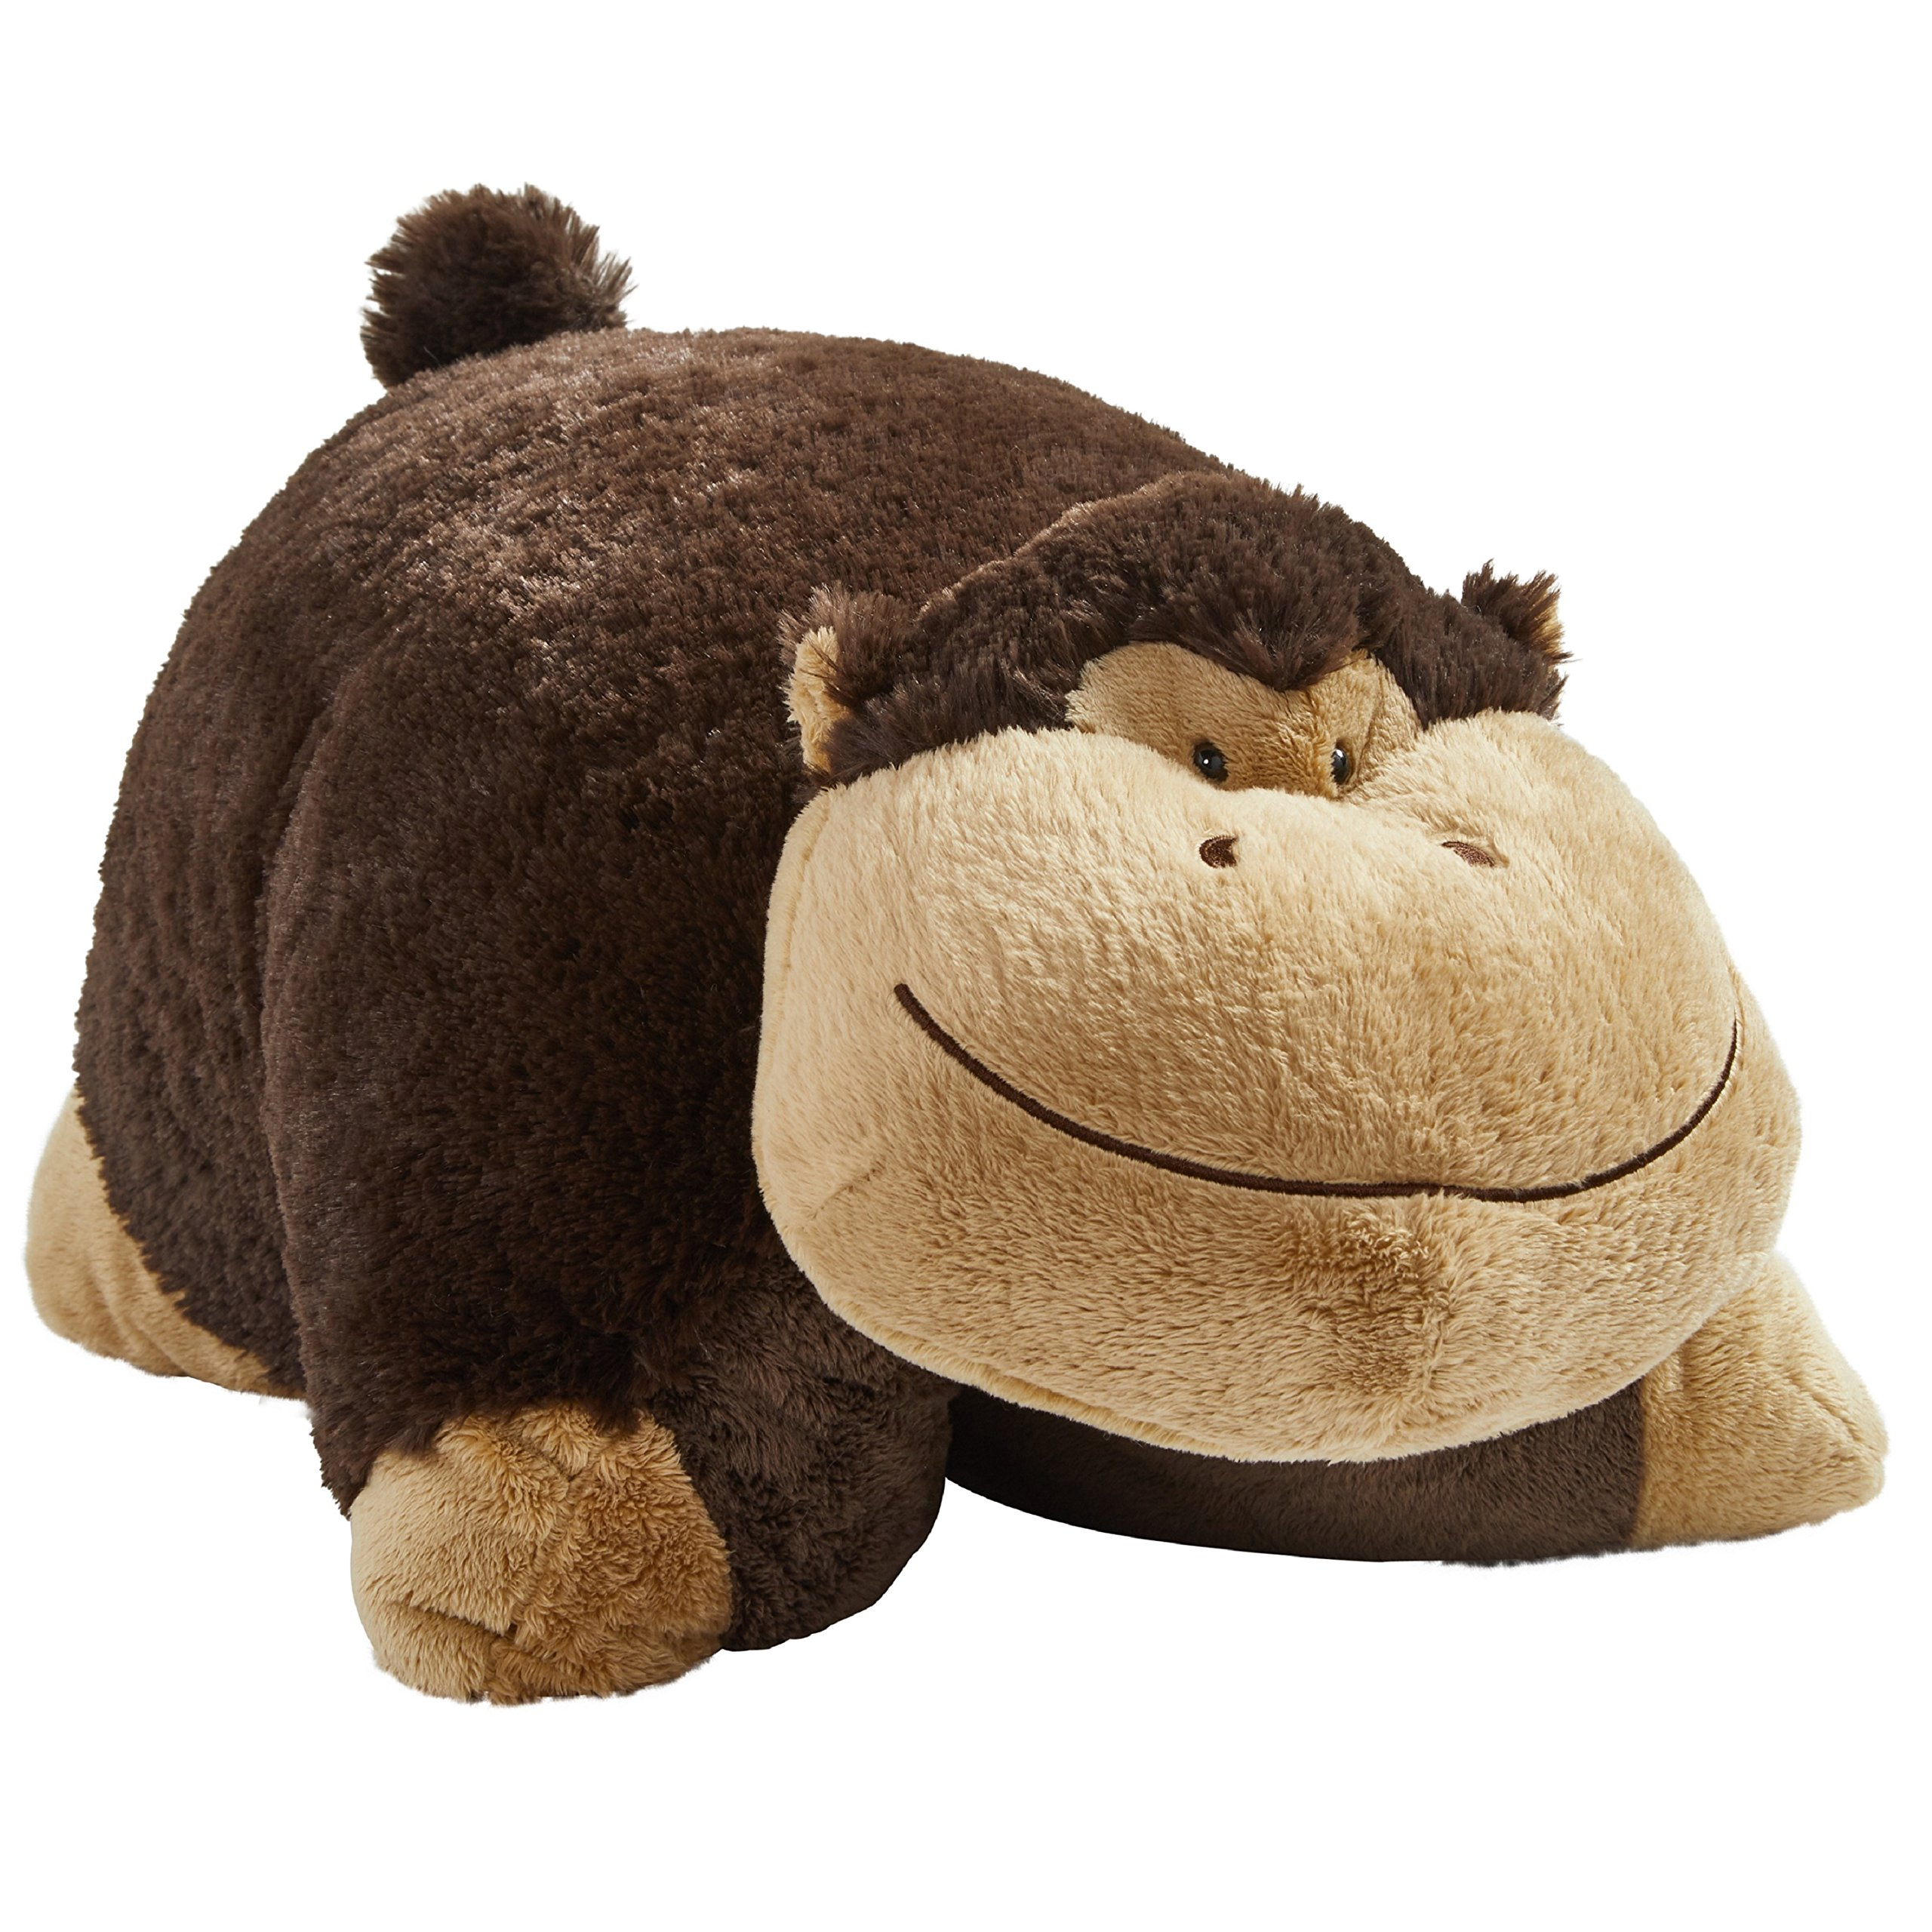 Pillow Pets Signature, Silly Monkey, 18'' Stuffed Animal Plush Toy